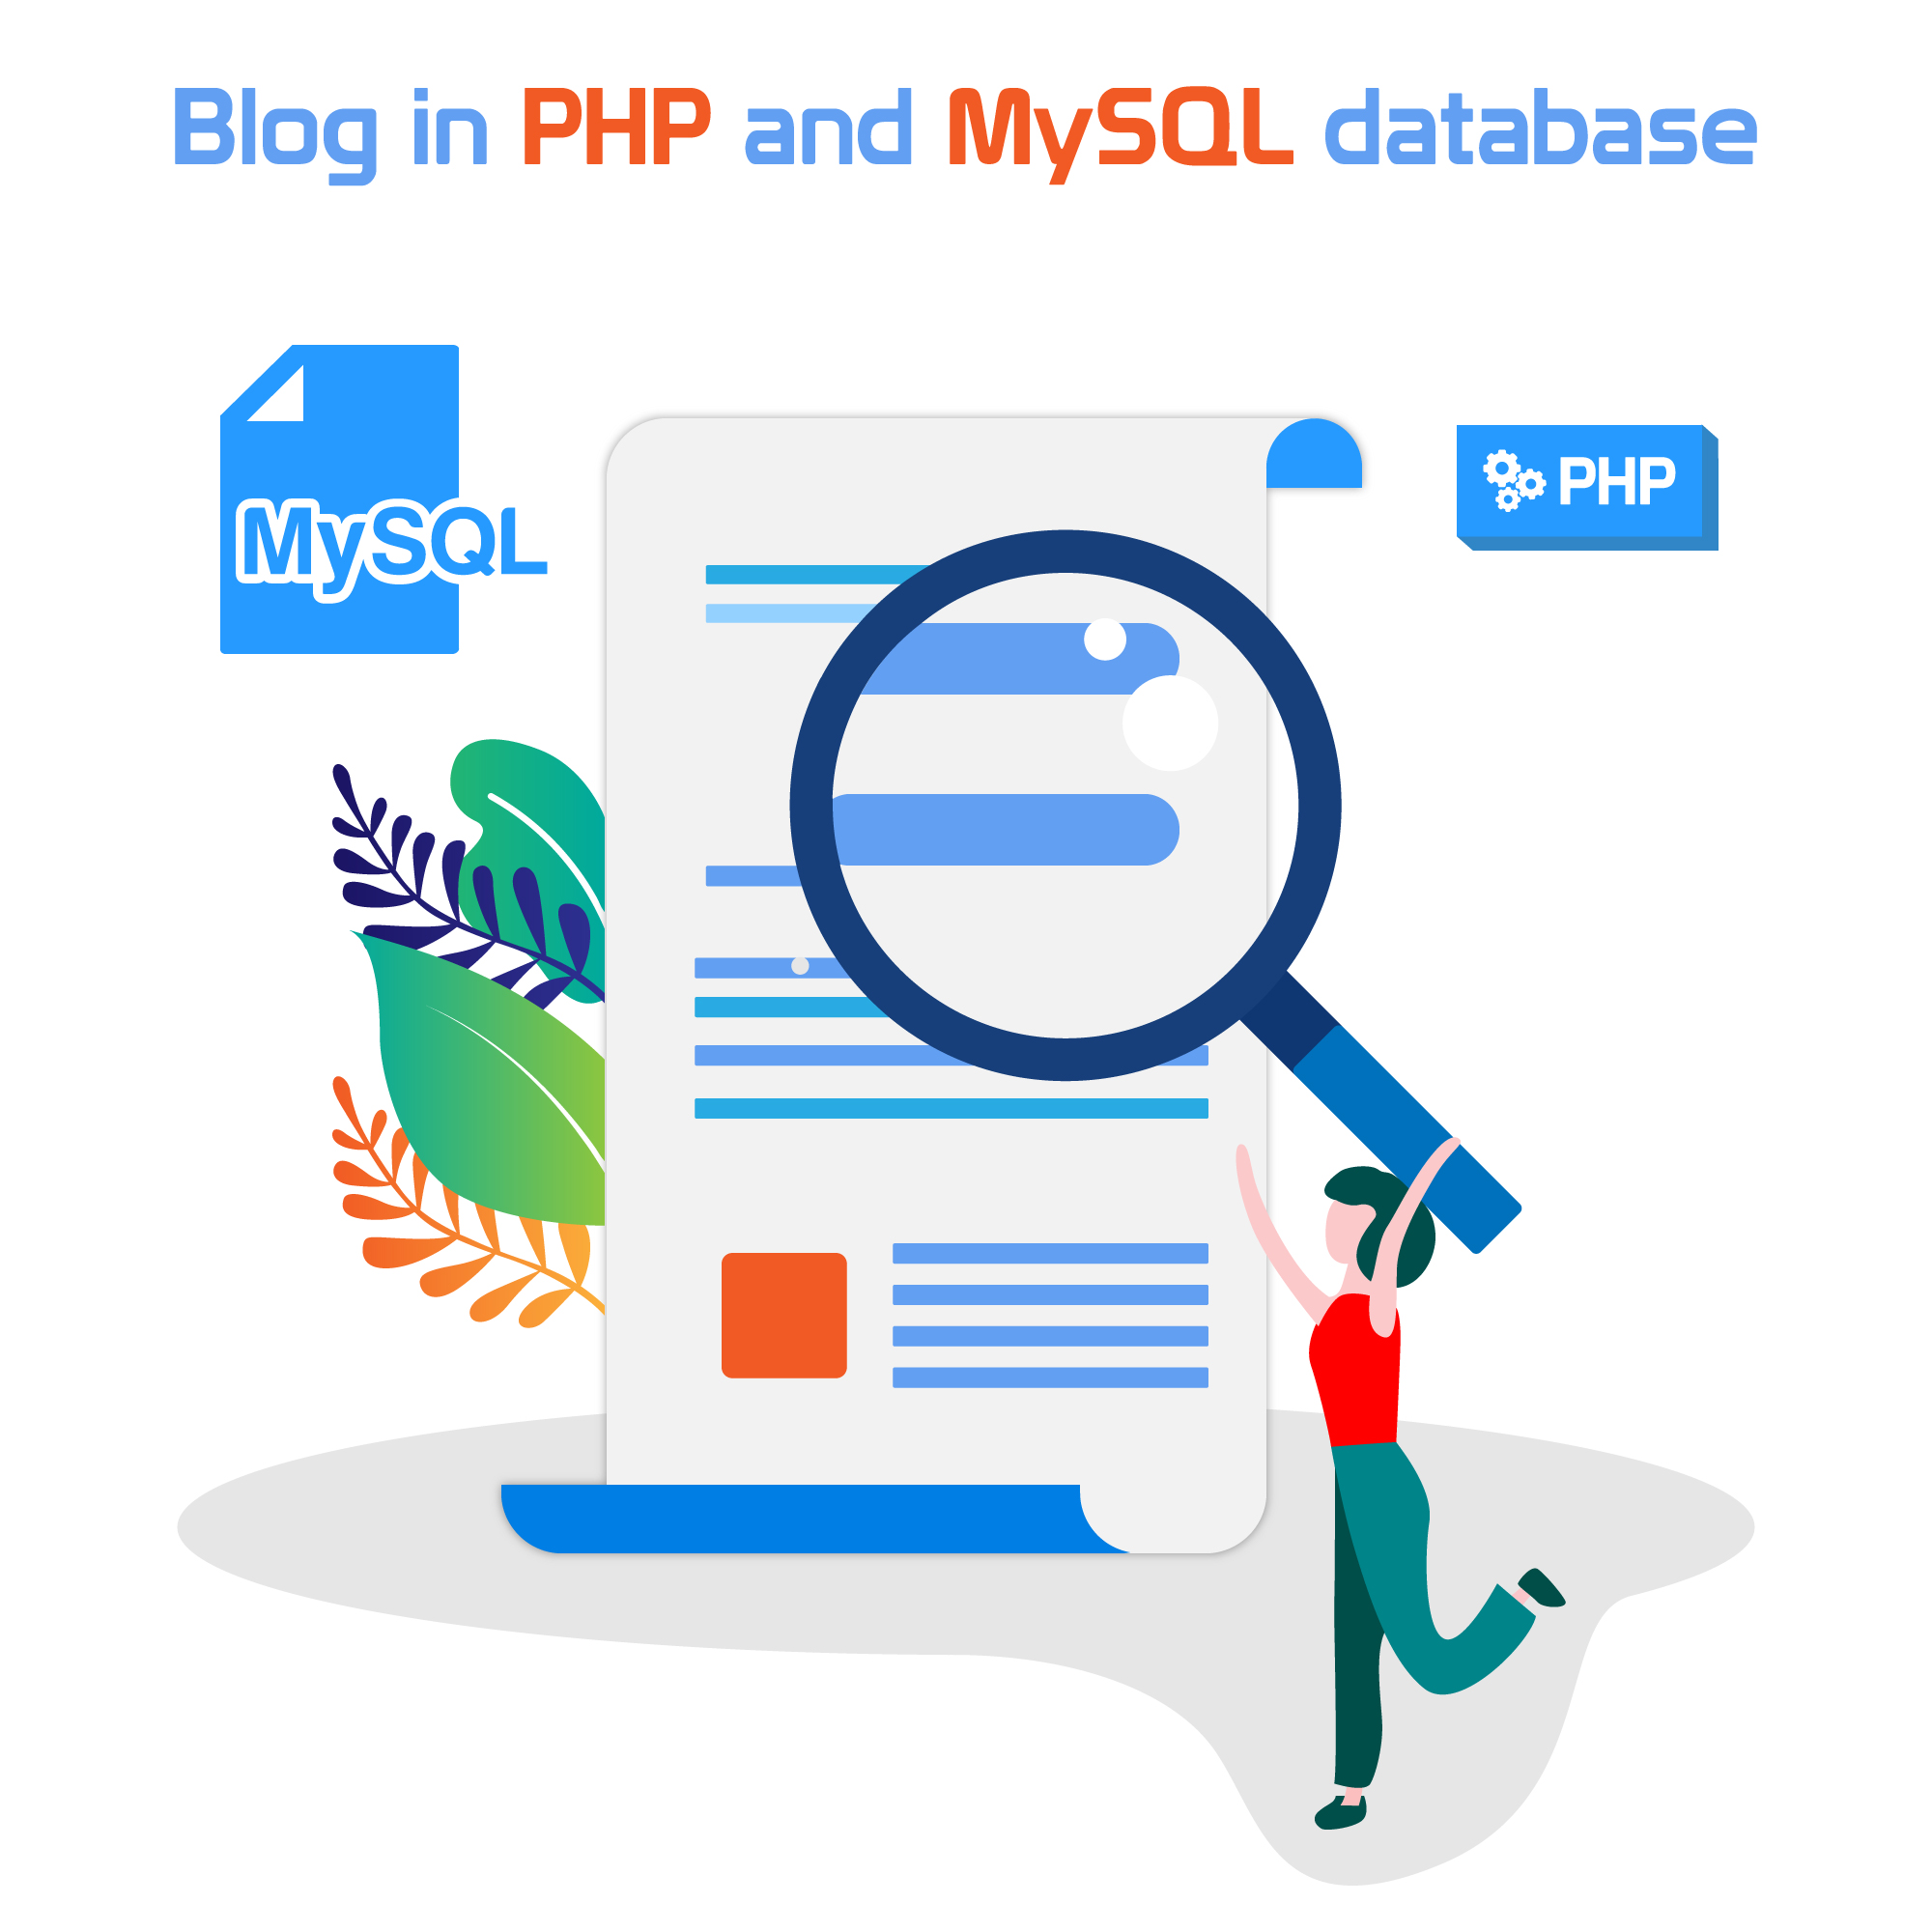 How to create a blog in PHP and MySQL database